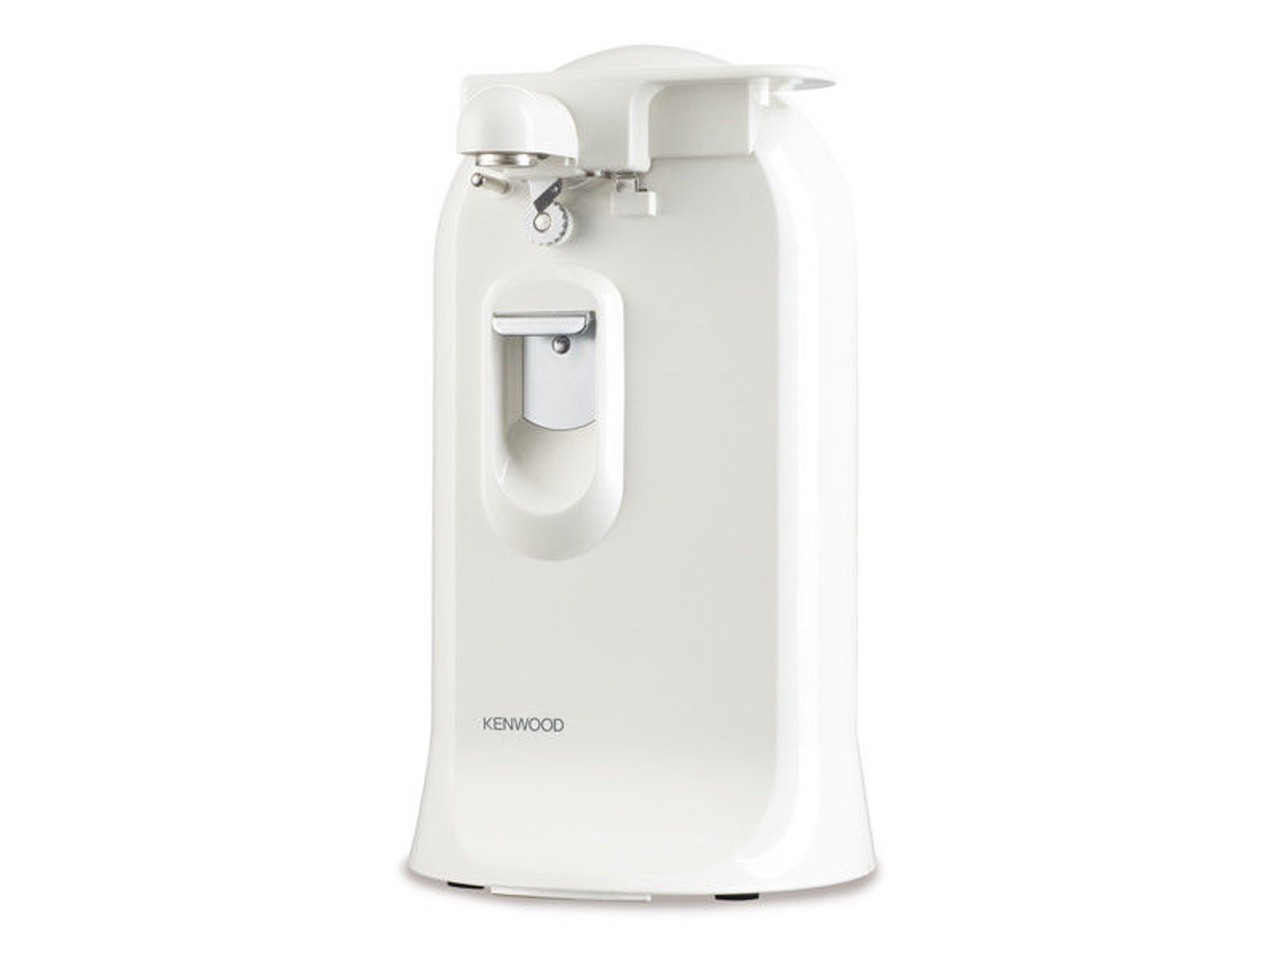 Kenwood CO600 3 in 1 Can Opener - Opens cans of all shapes & sizes up to 1.2kg